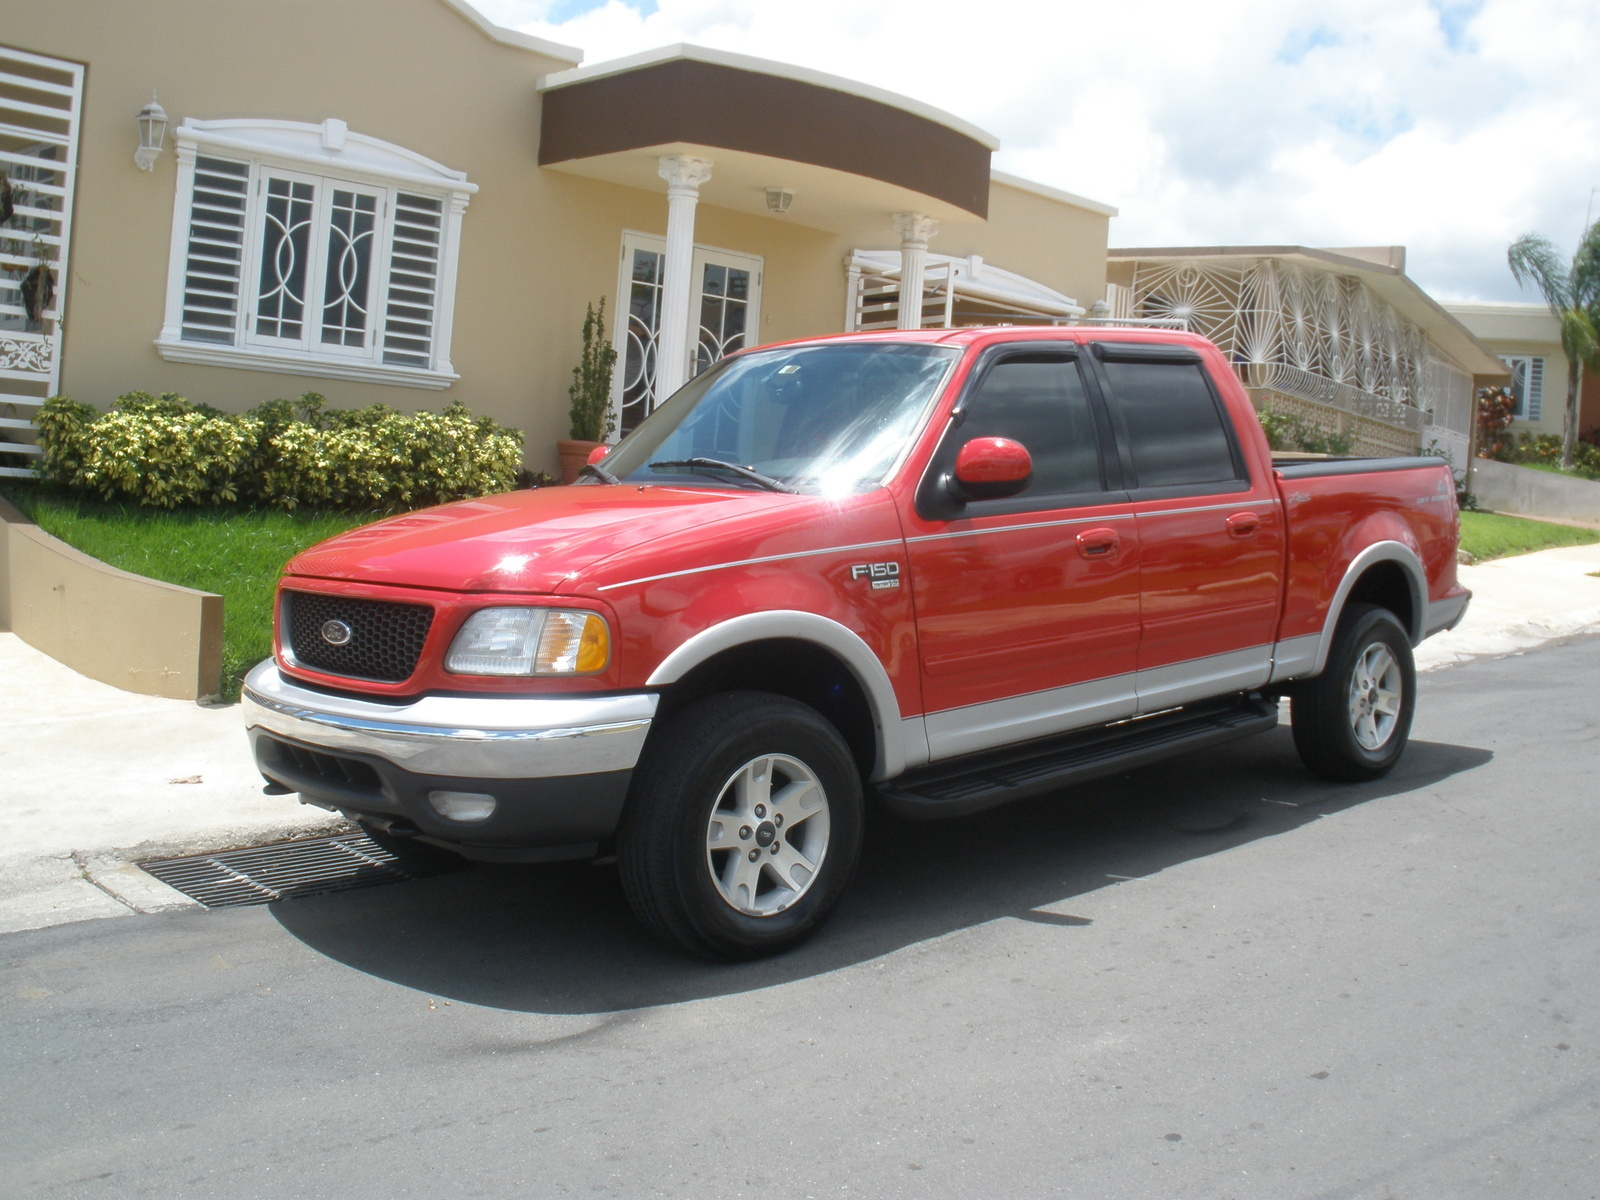 2003 Ford Ranger User Reviews Cargurus. Of 2003 Ford F150 Lariat Crew Cab 4wd Sb Exterior Galleryworthy. Ford. 2003 Ford Ranger Extended Cab Parts Diagram At Scoala.co